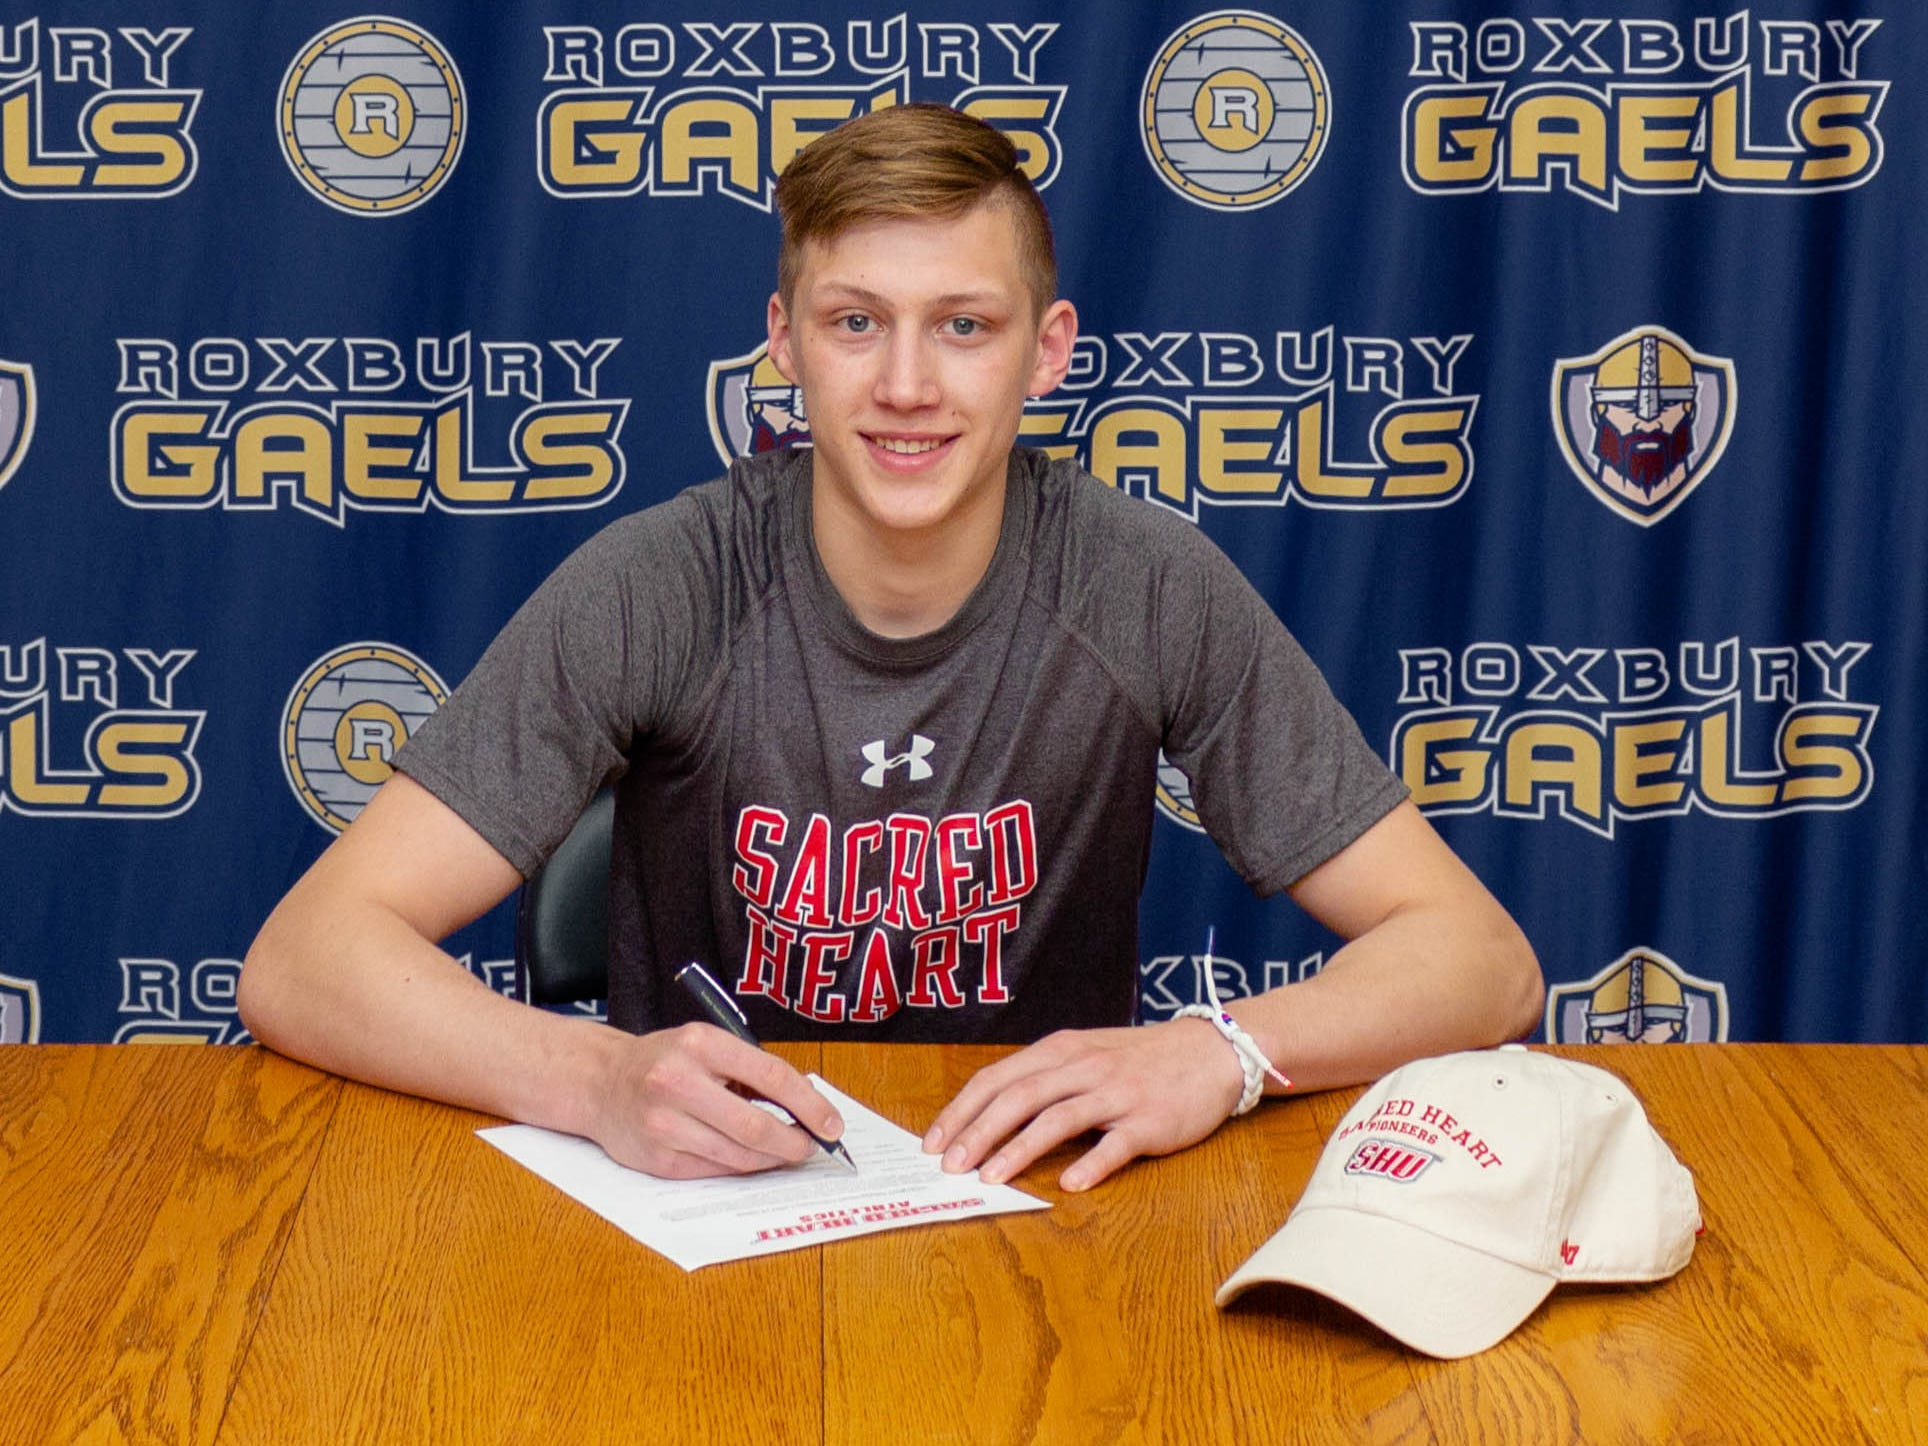 Roxbury senior Scott Yarosz signed a National Letter of Intent with Sacred Heart wrestling on Friday.